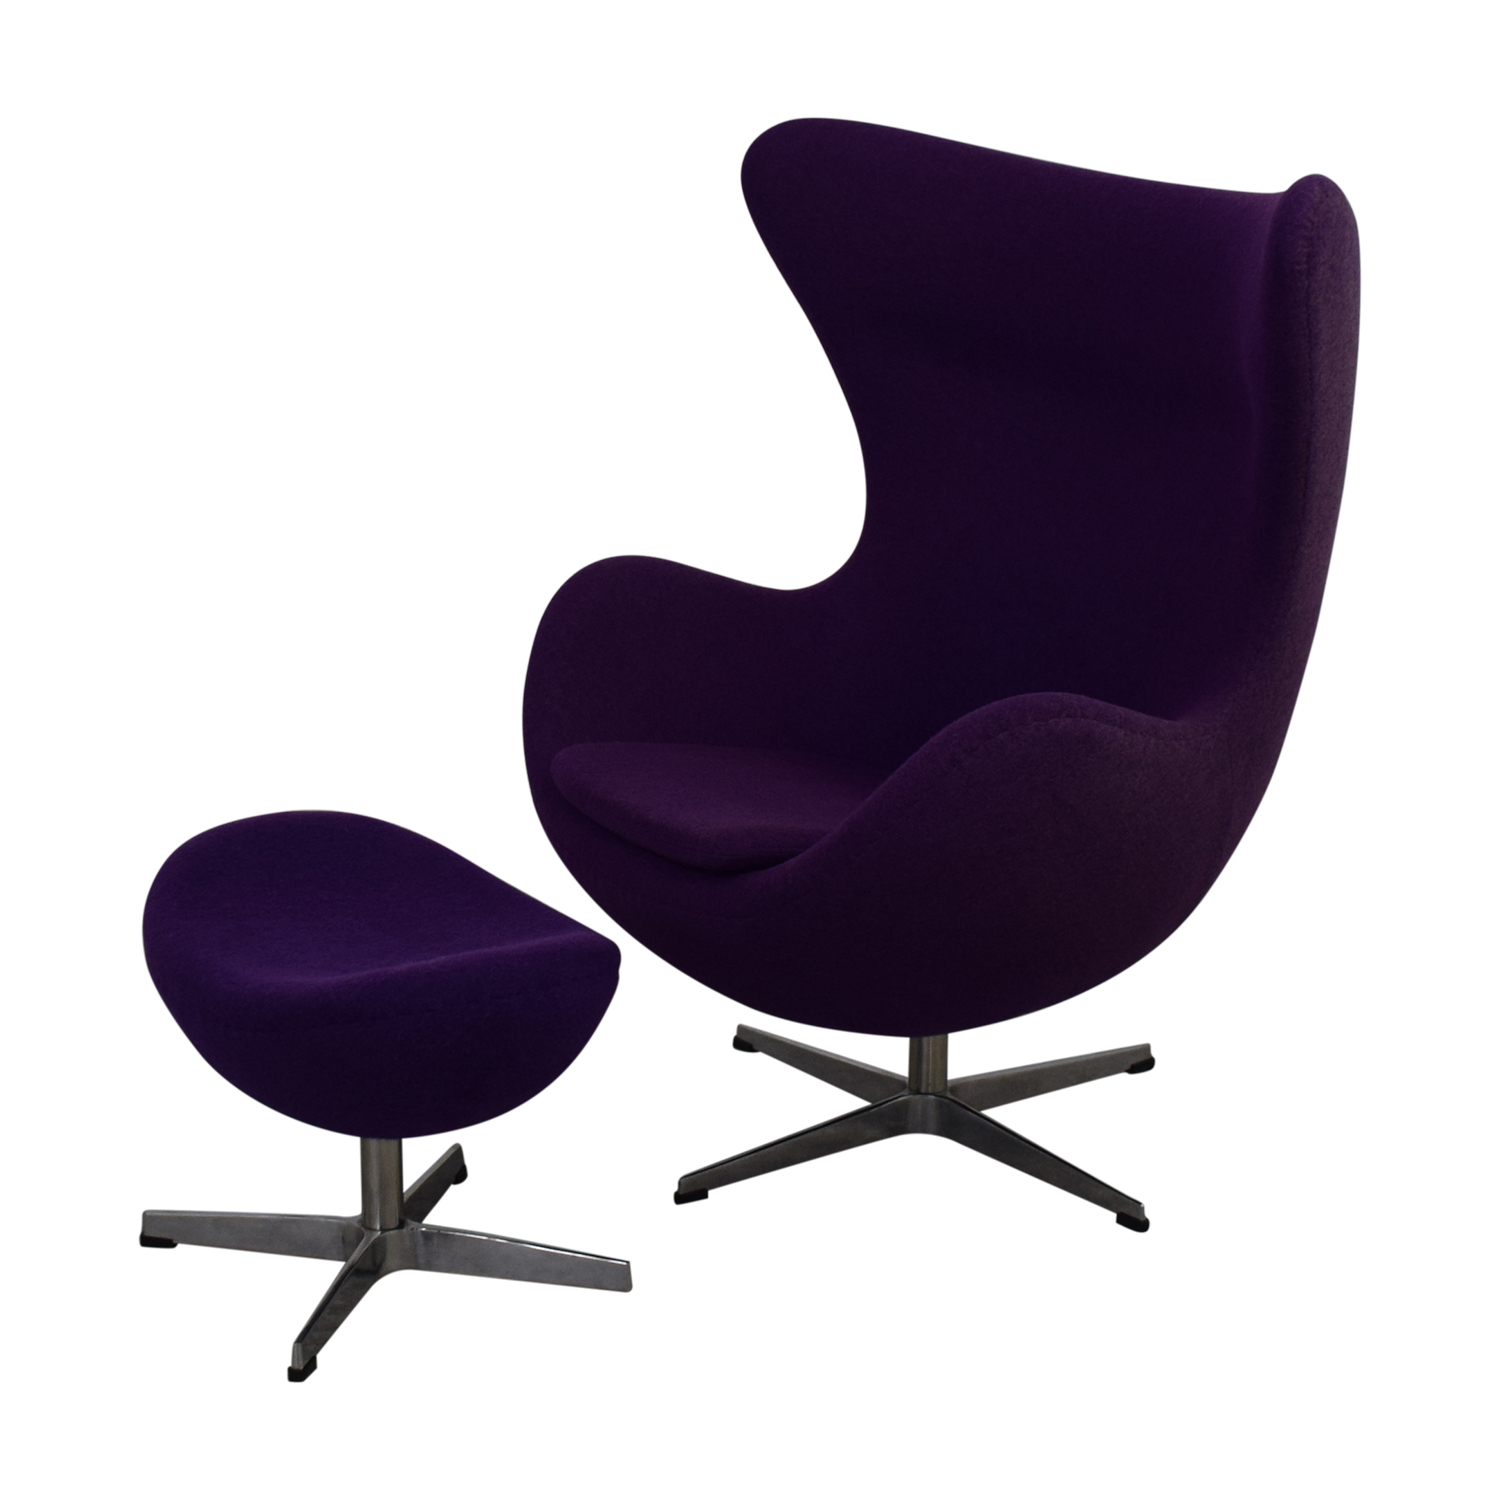 Stupendous 82 Off Orren Ellis Orren Ellis Deniela Purple Swivel Balloon Chair And Ottoman Chairs Gamerscity Chair Design For Home Gamerscityorg